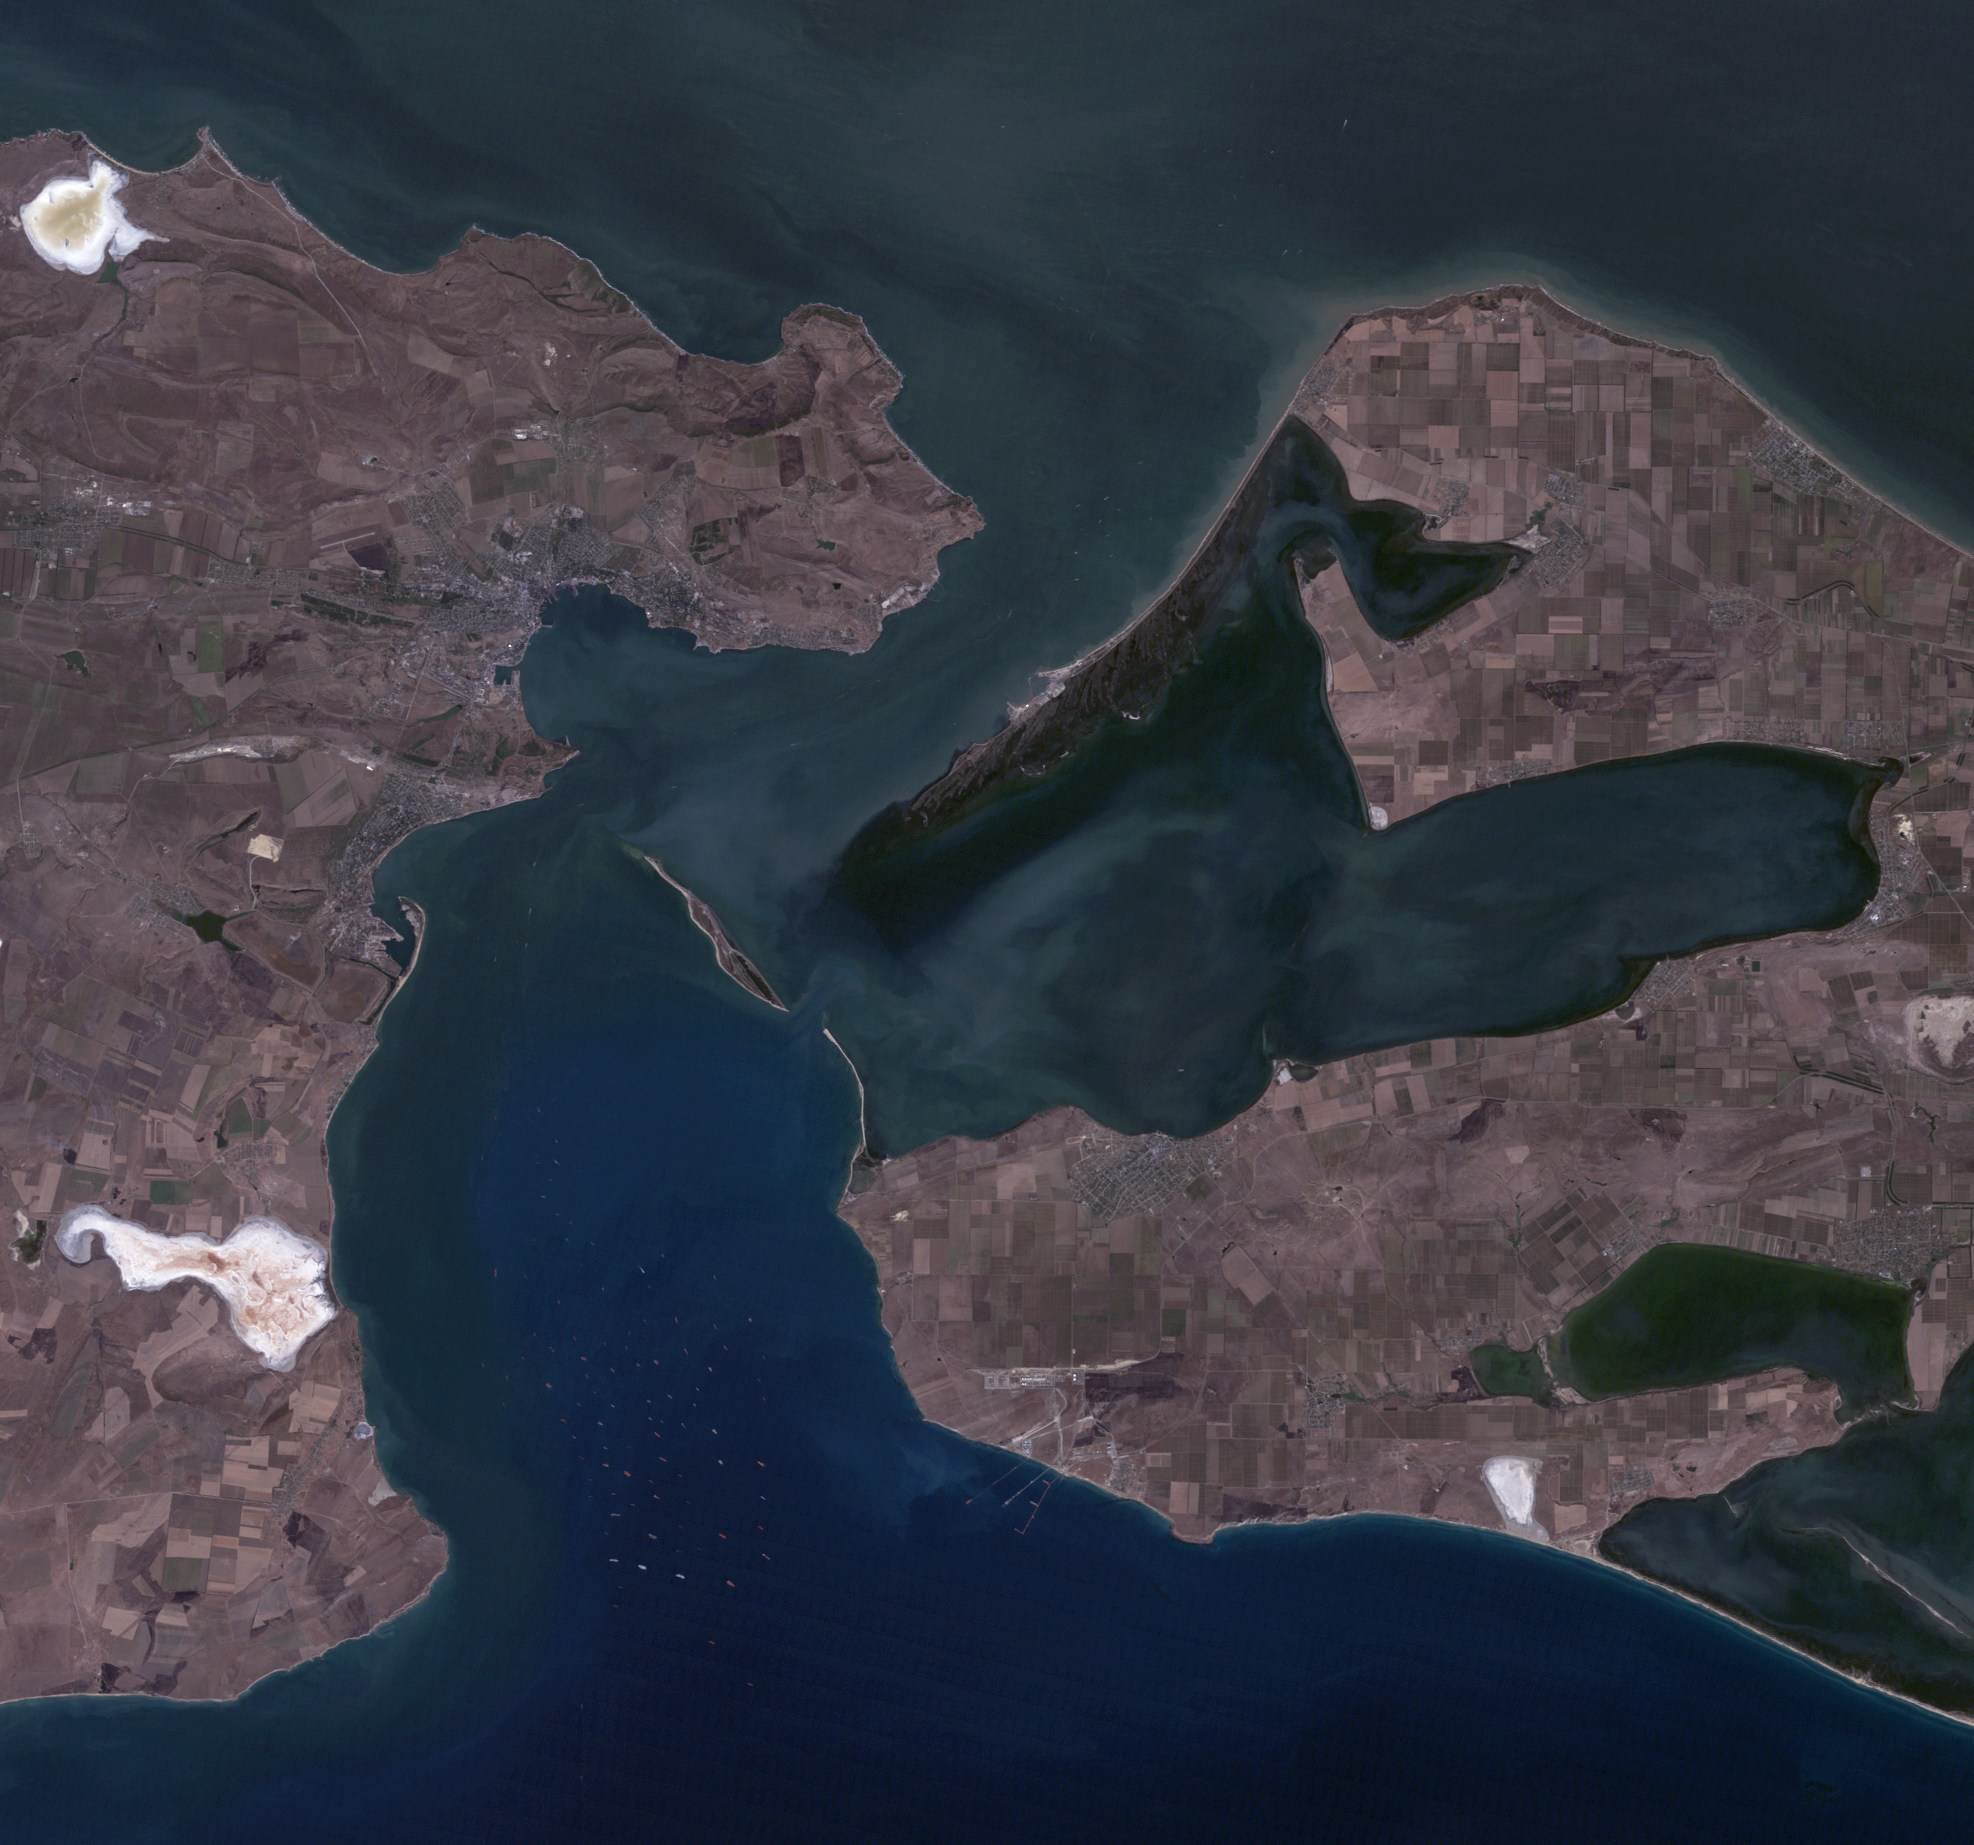 The Kerch Strait between the Sea of Azov (top), the Russian Federal Subject of Krasnodar Krai (Right), the Black Sea (Bottom), and Crimea (Left).  Credit:  Image By NASA [Public domain], via Wikimedia Commons.